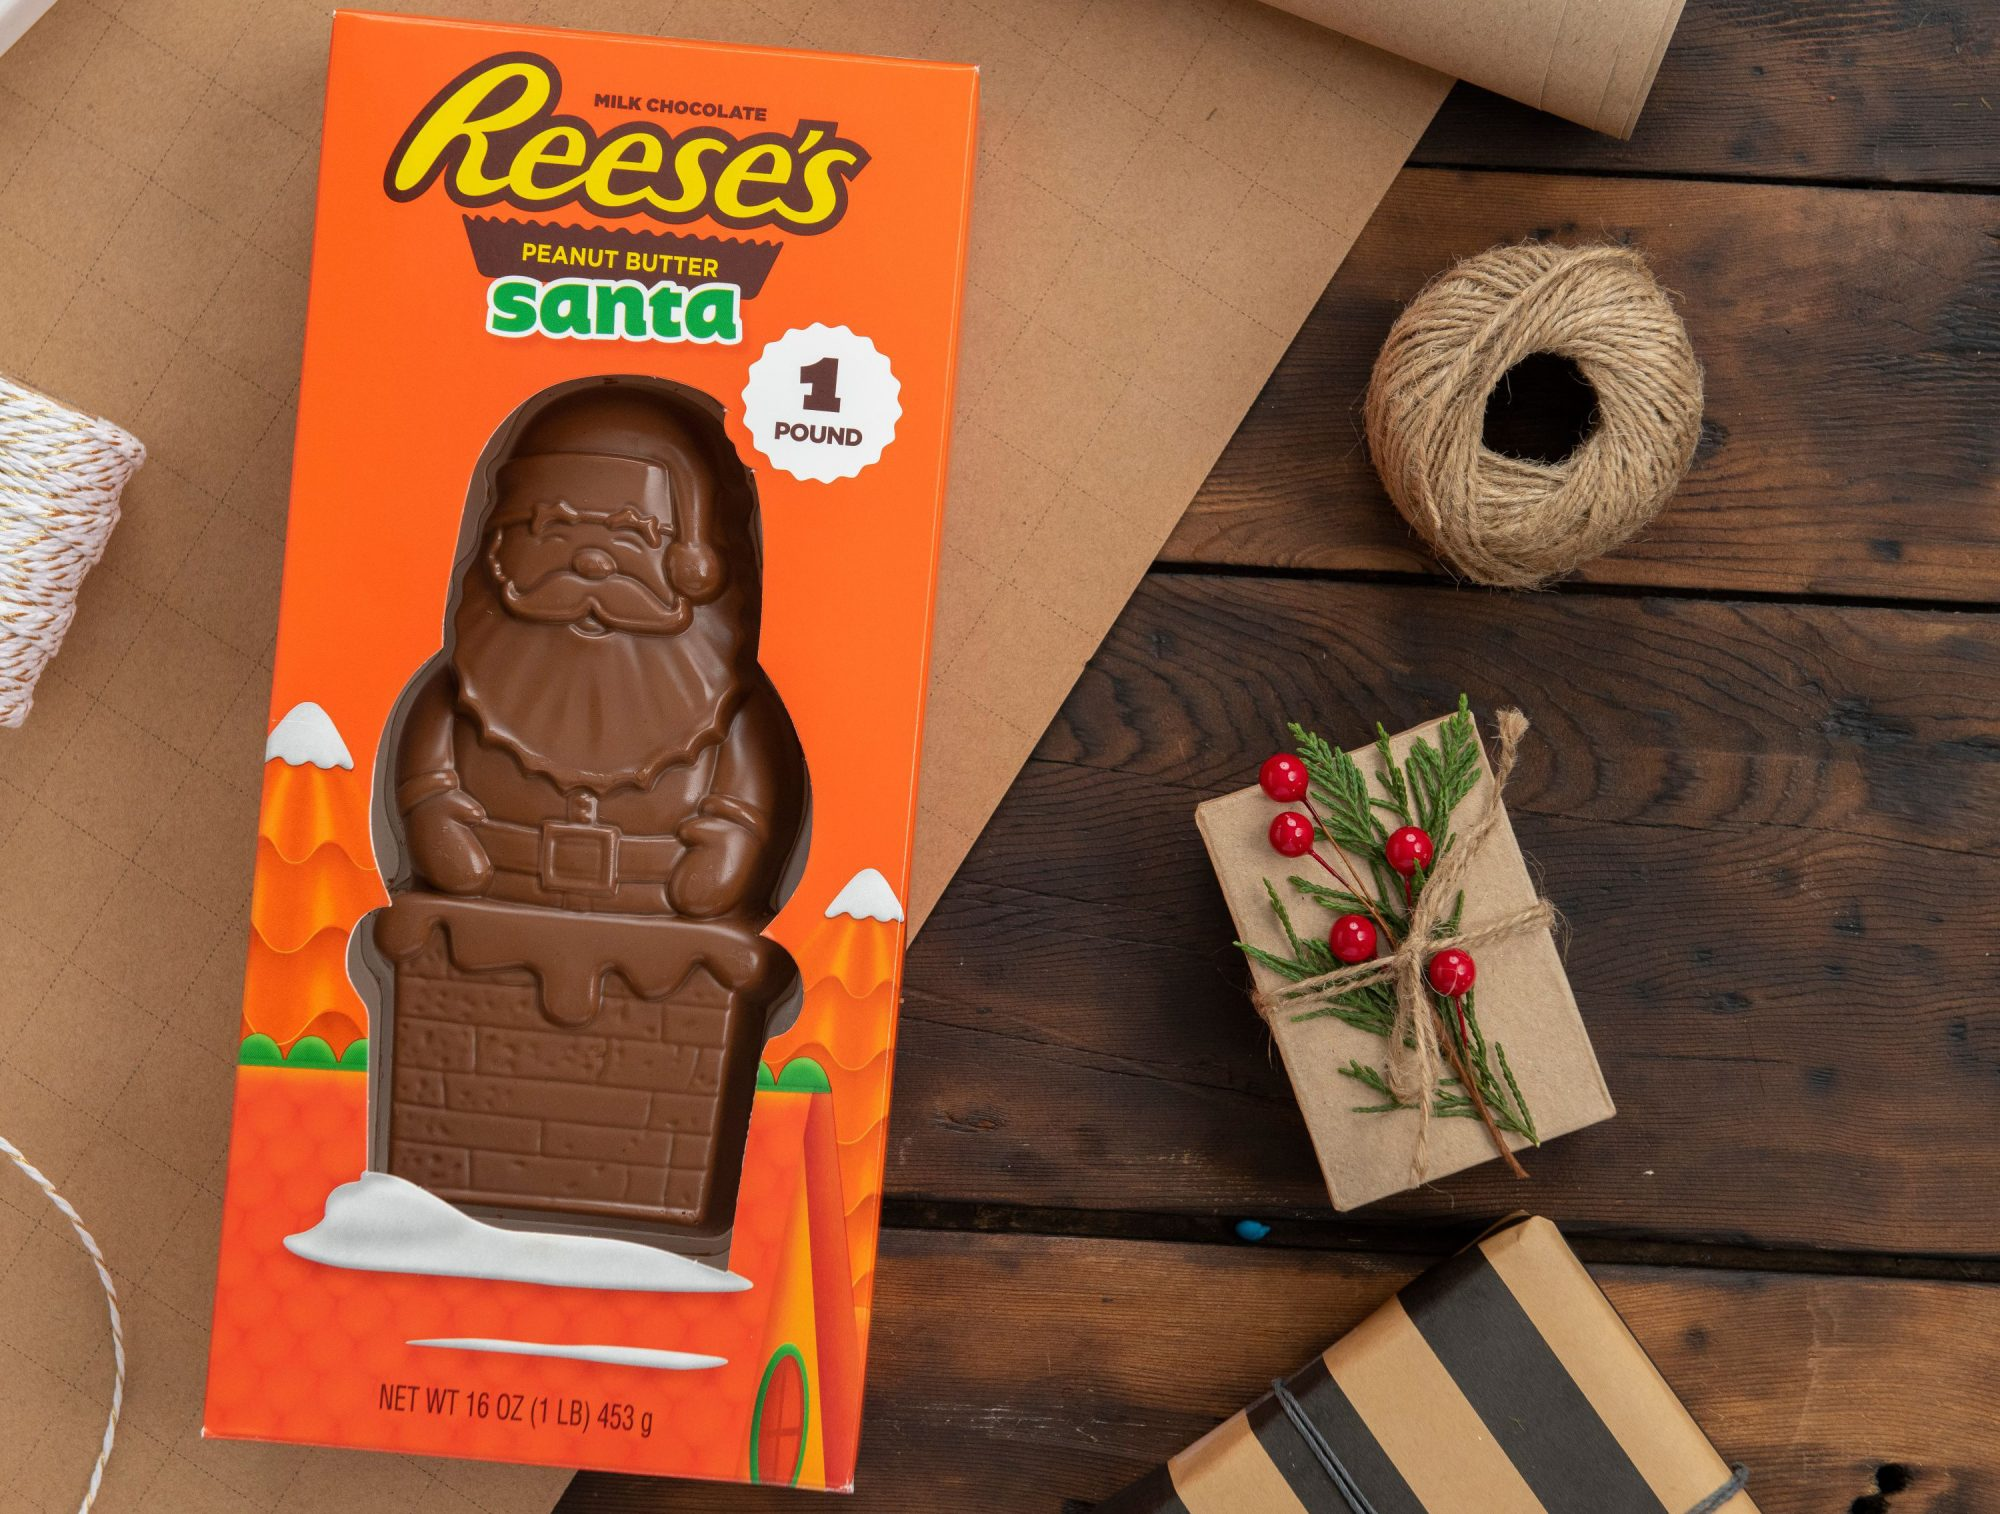 it's a santa-shaped reese's cup that weighs a pound